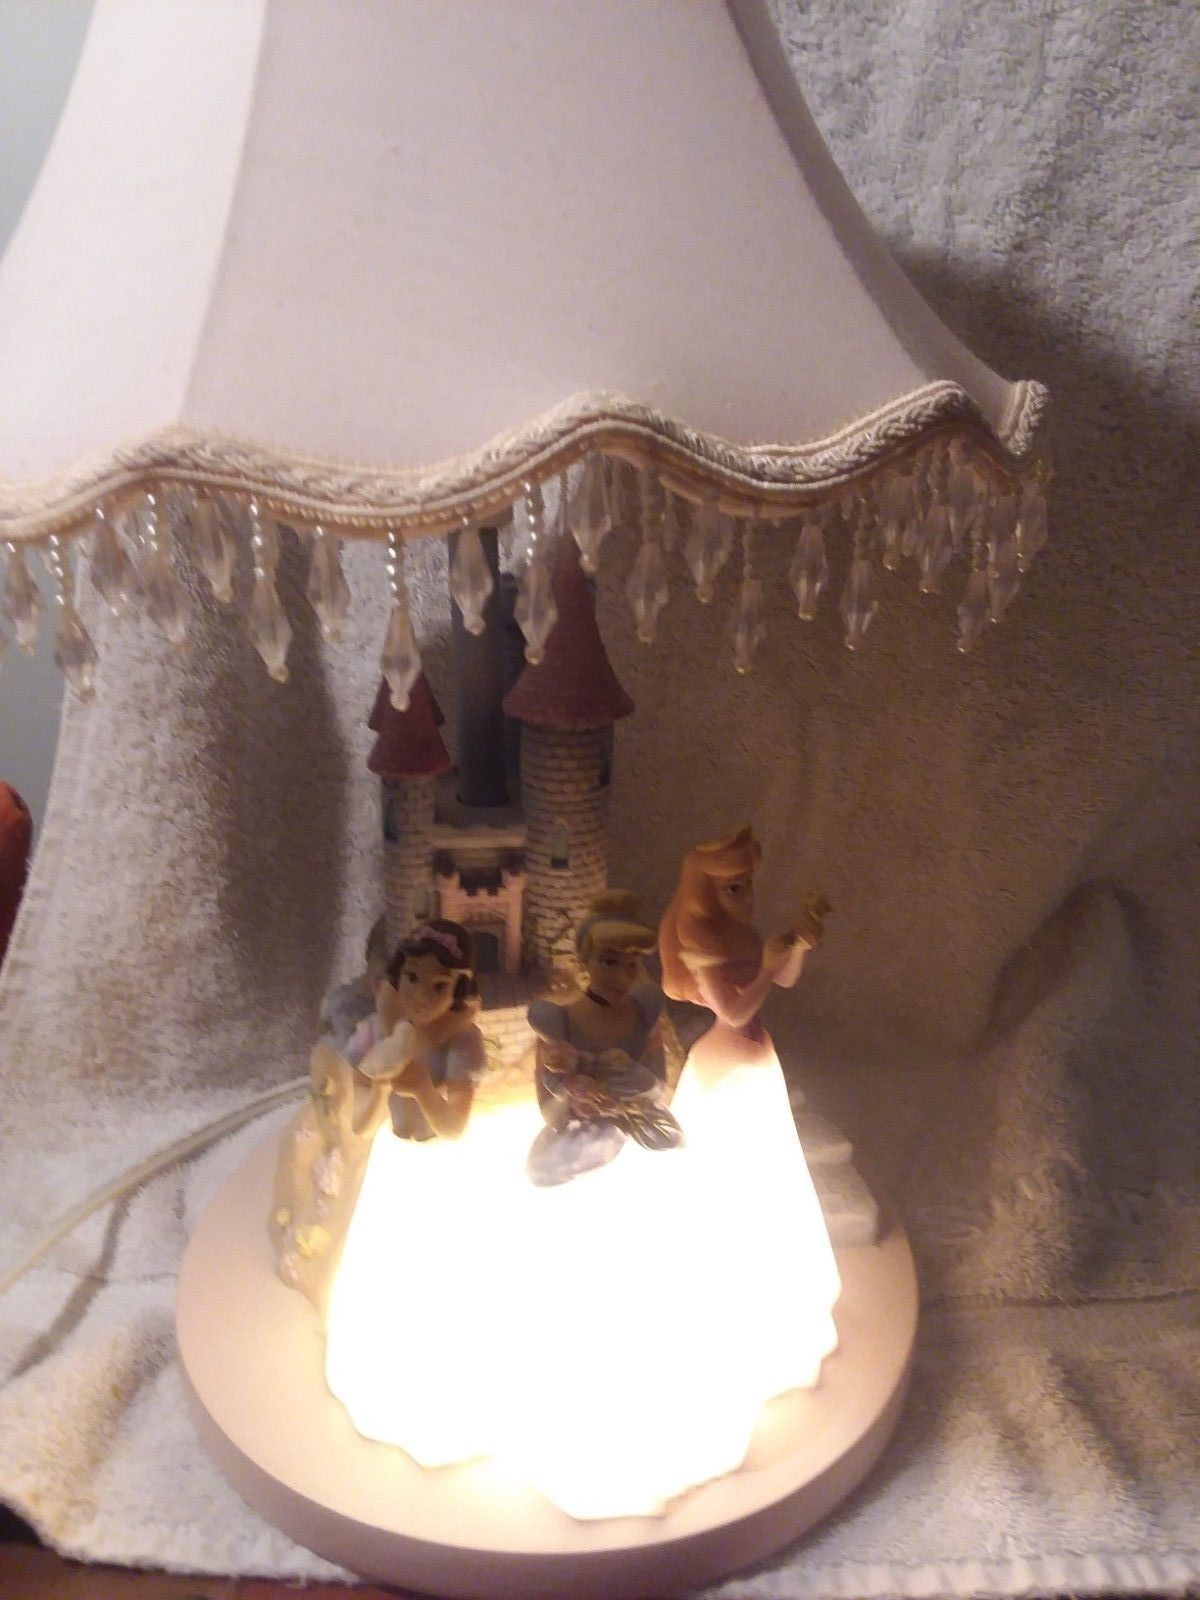 Disney 3 Princesses Table Lamp /Night Light Beaded Shade by Hampton Bay